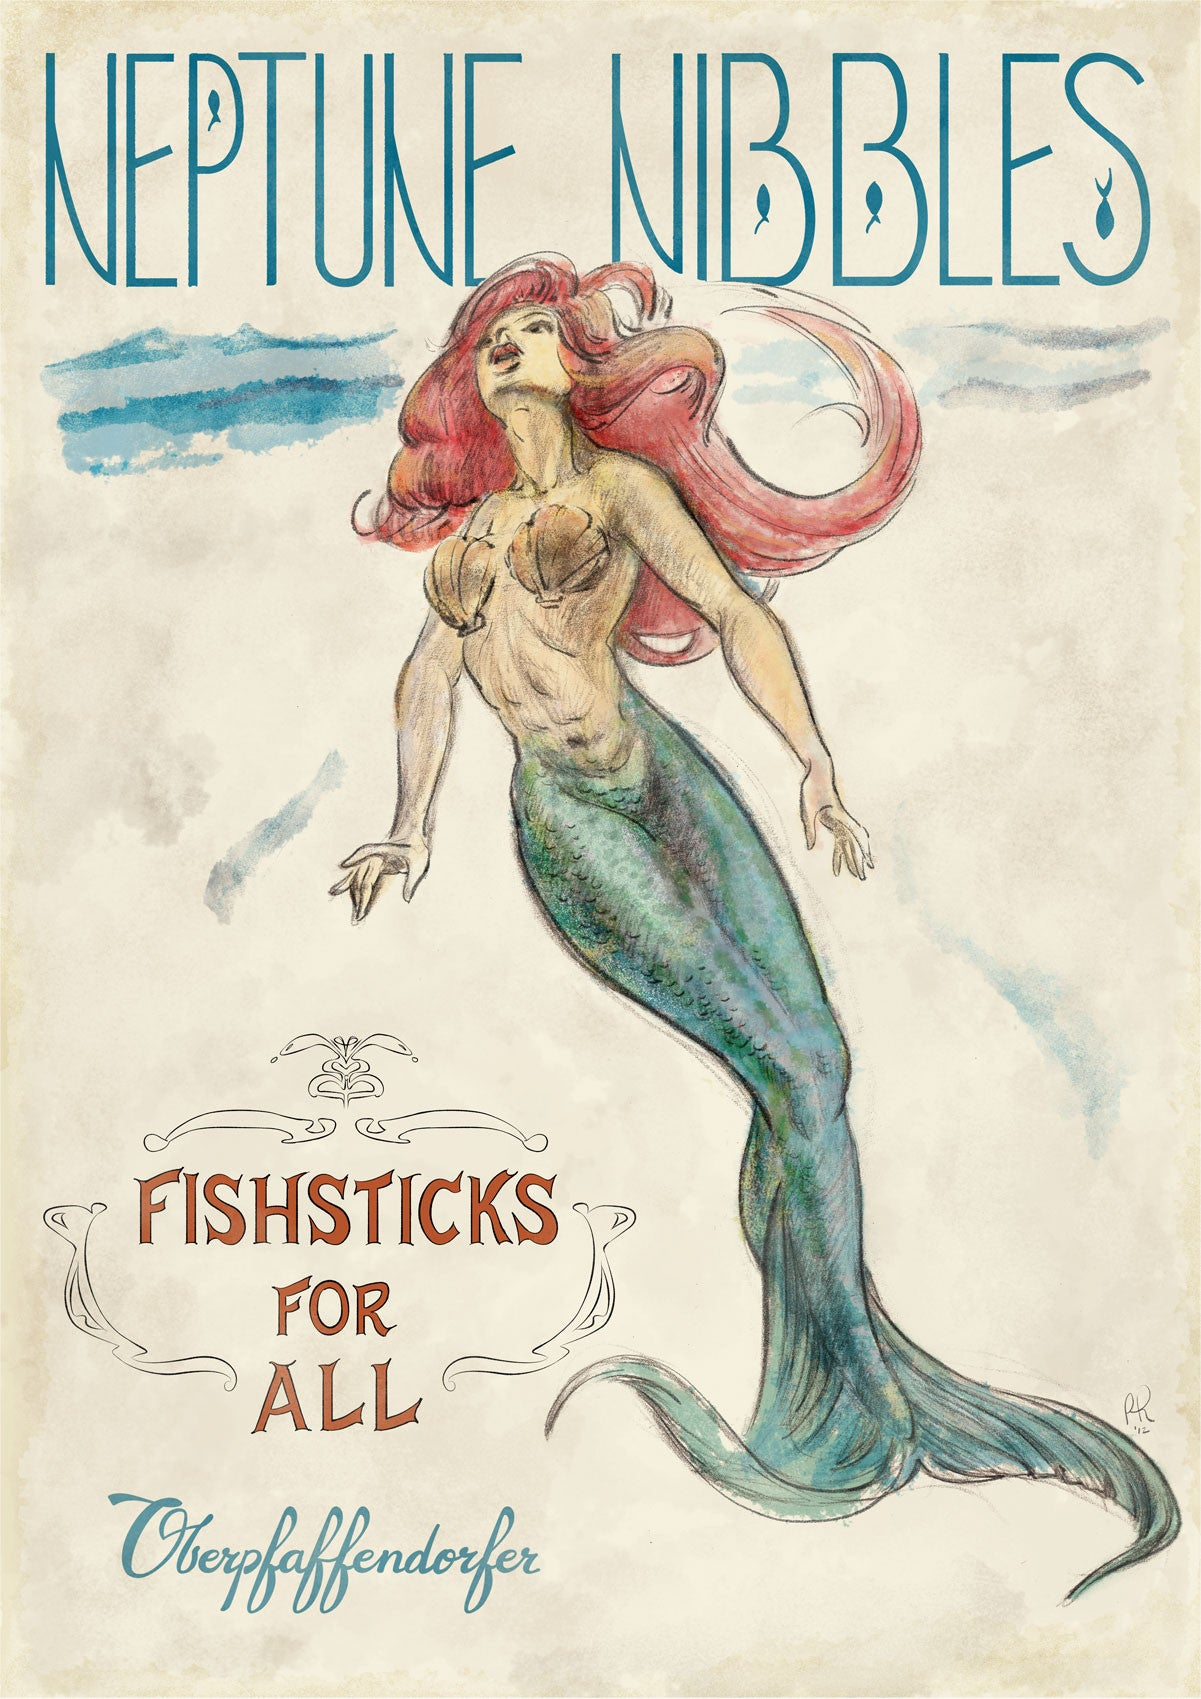 Illustrated mermaid vintage poster ad for fish sticks (circa 1910's)